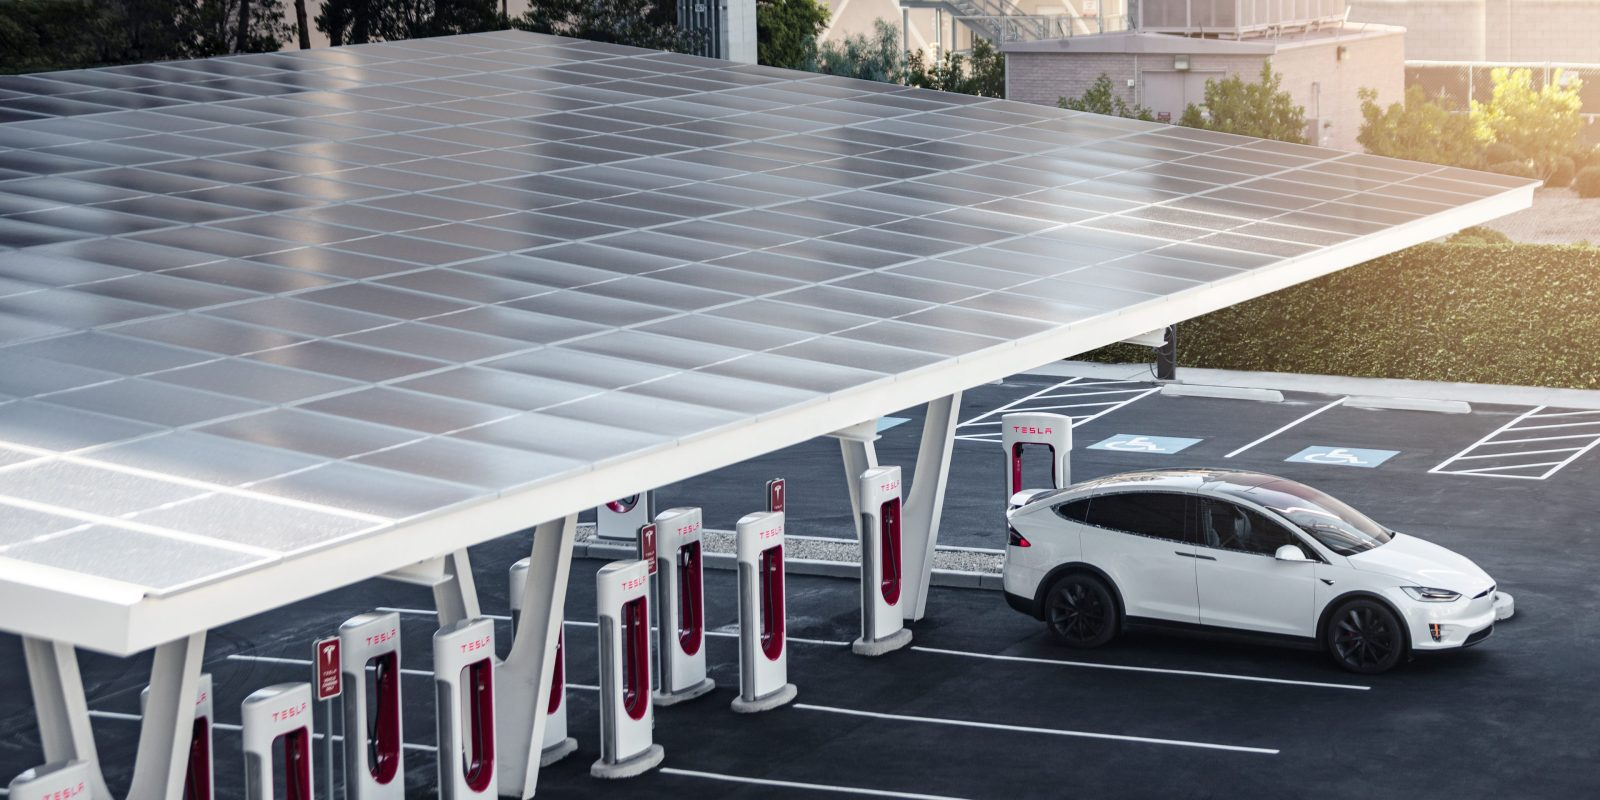 Tesla is opening a rare new Supercharger V3 station